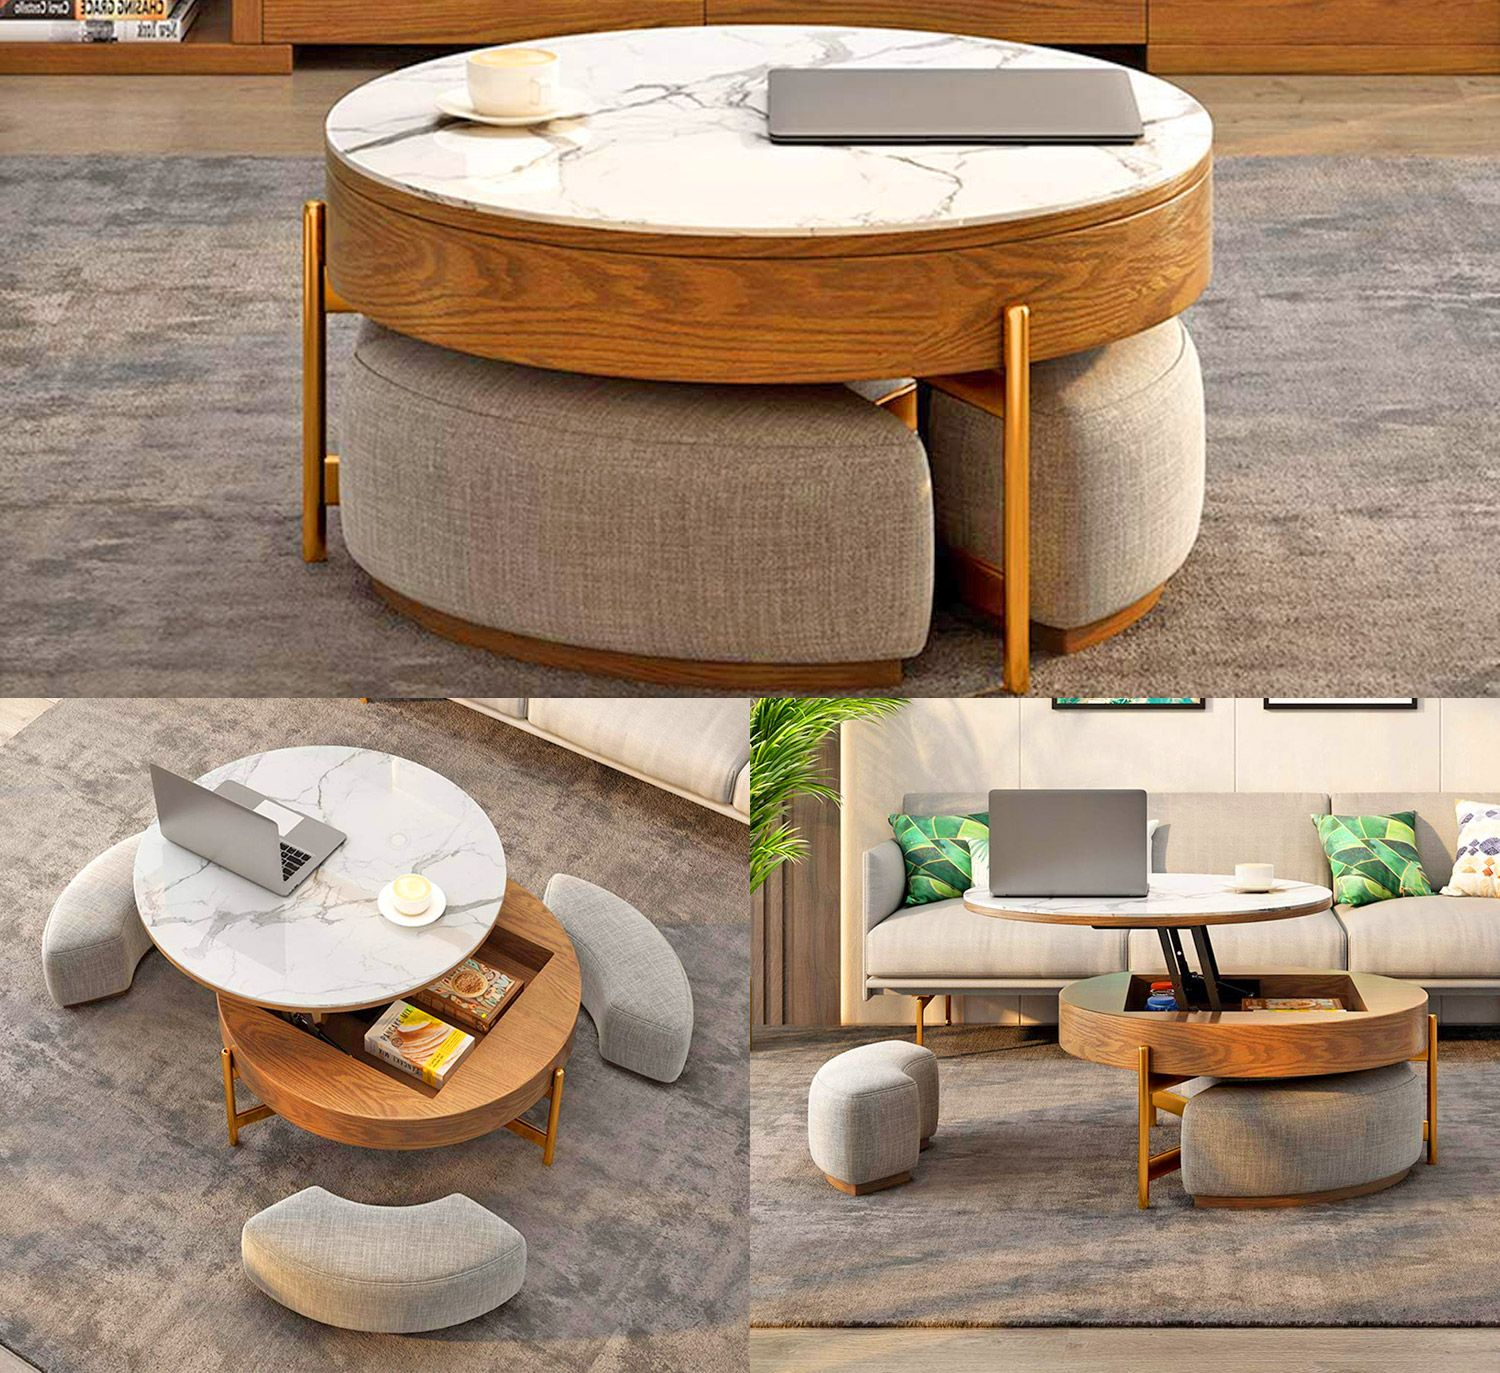 This Amazing Rising Coffee Table Has 3 Integrated Ottomans That Hide Underneath It Living Room Ottoman Coffee Table Diy Furniture Table Ottoman In Living Room